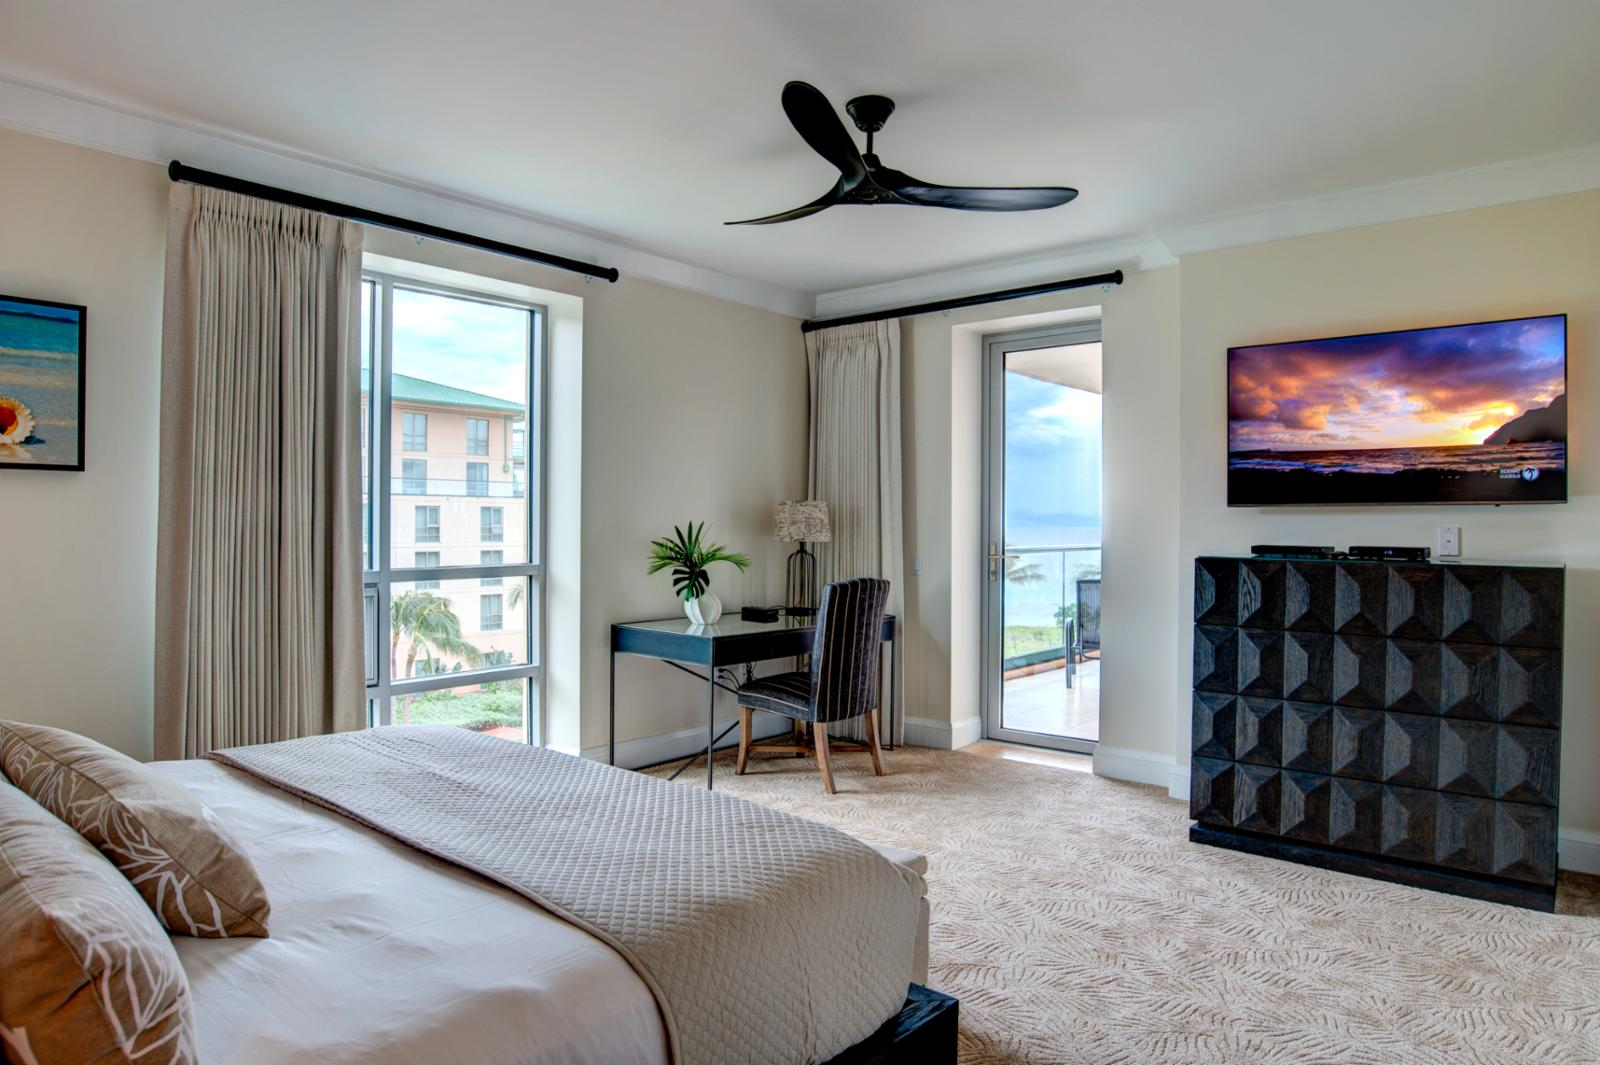 New ceiling fan, flatscreen television and private entry to the balcony from the master suite